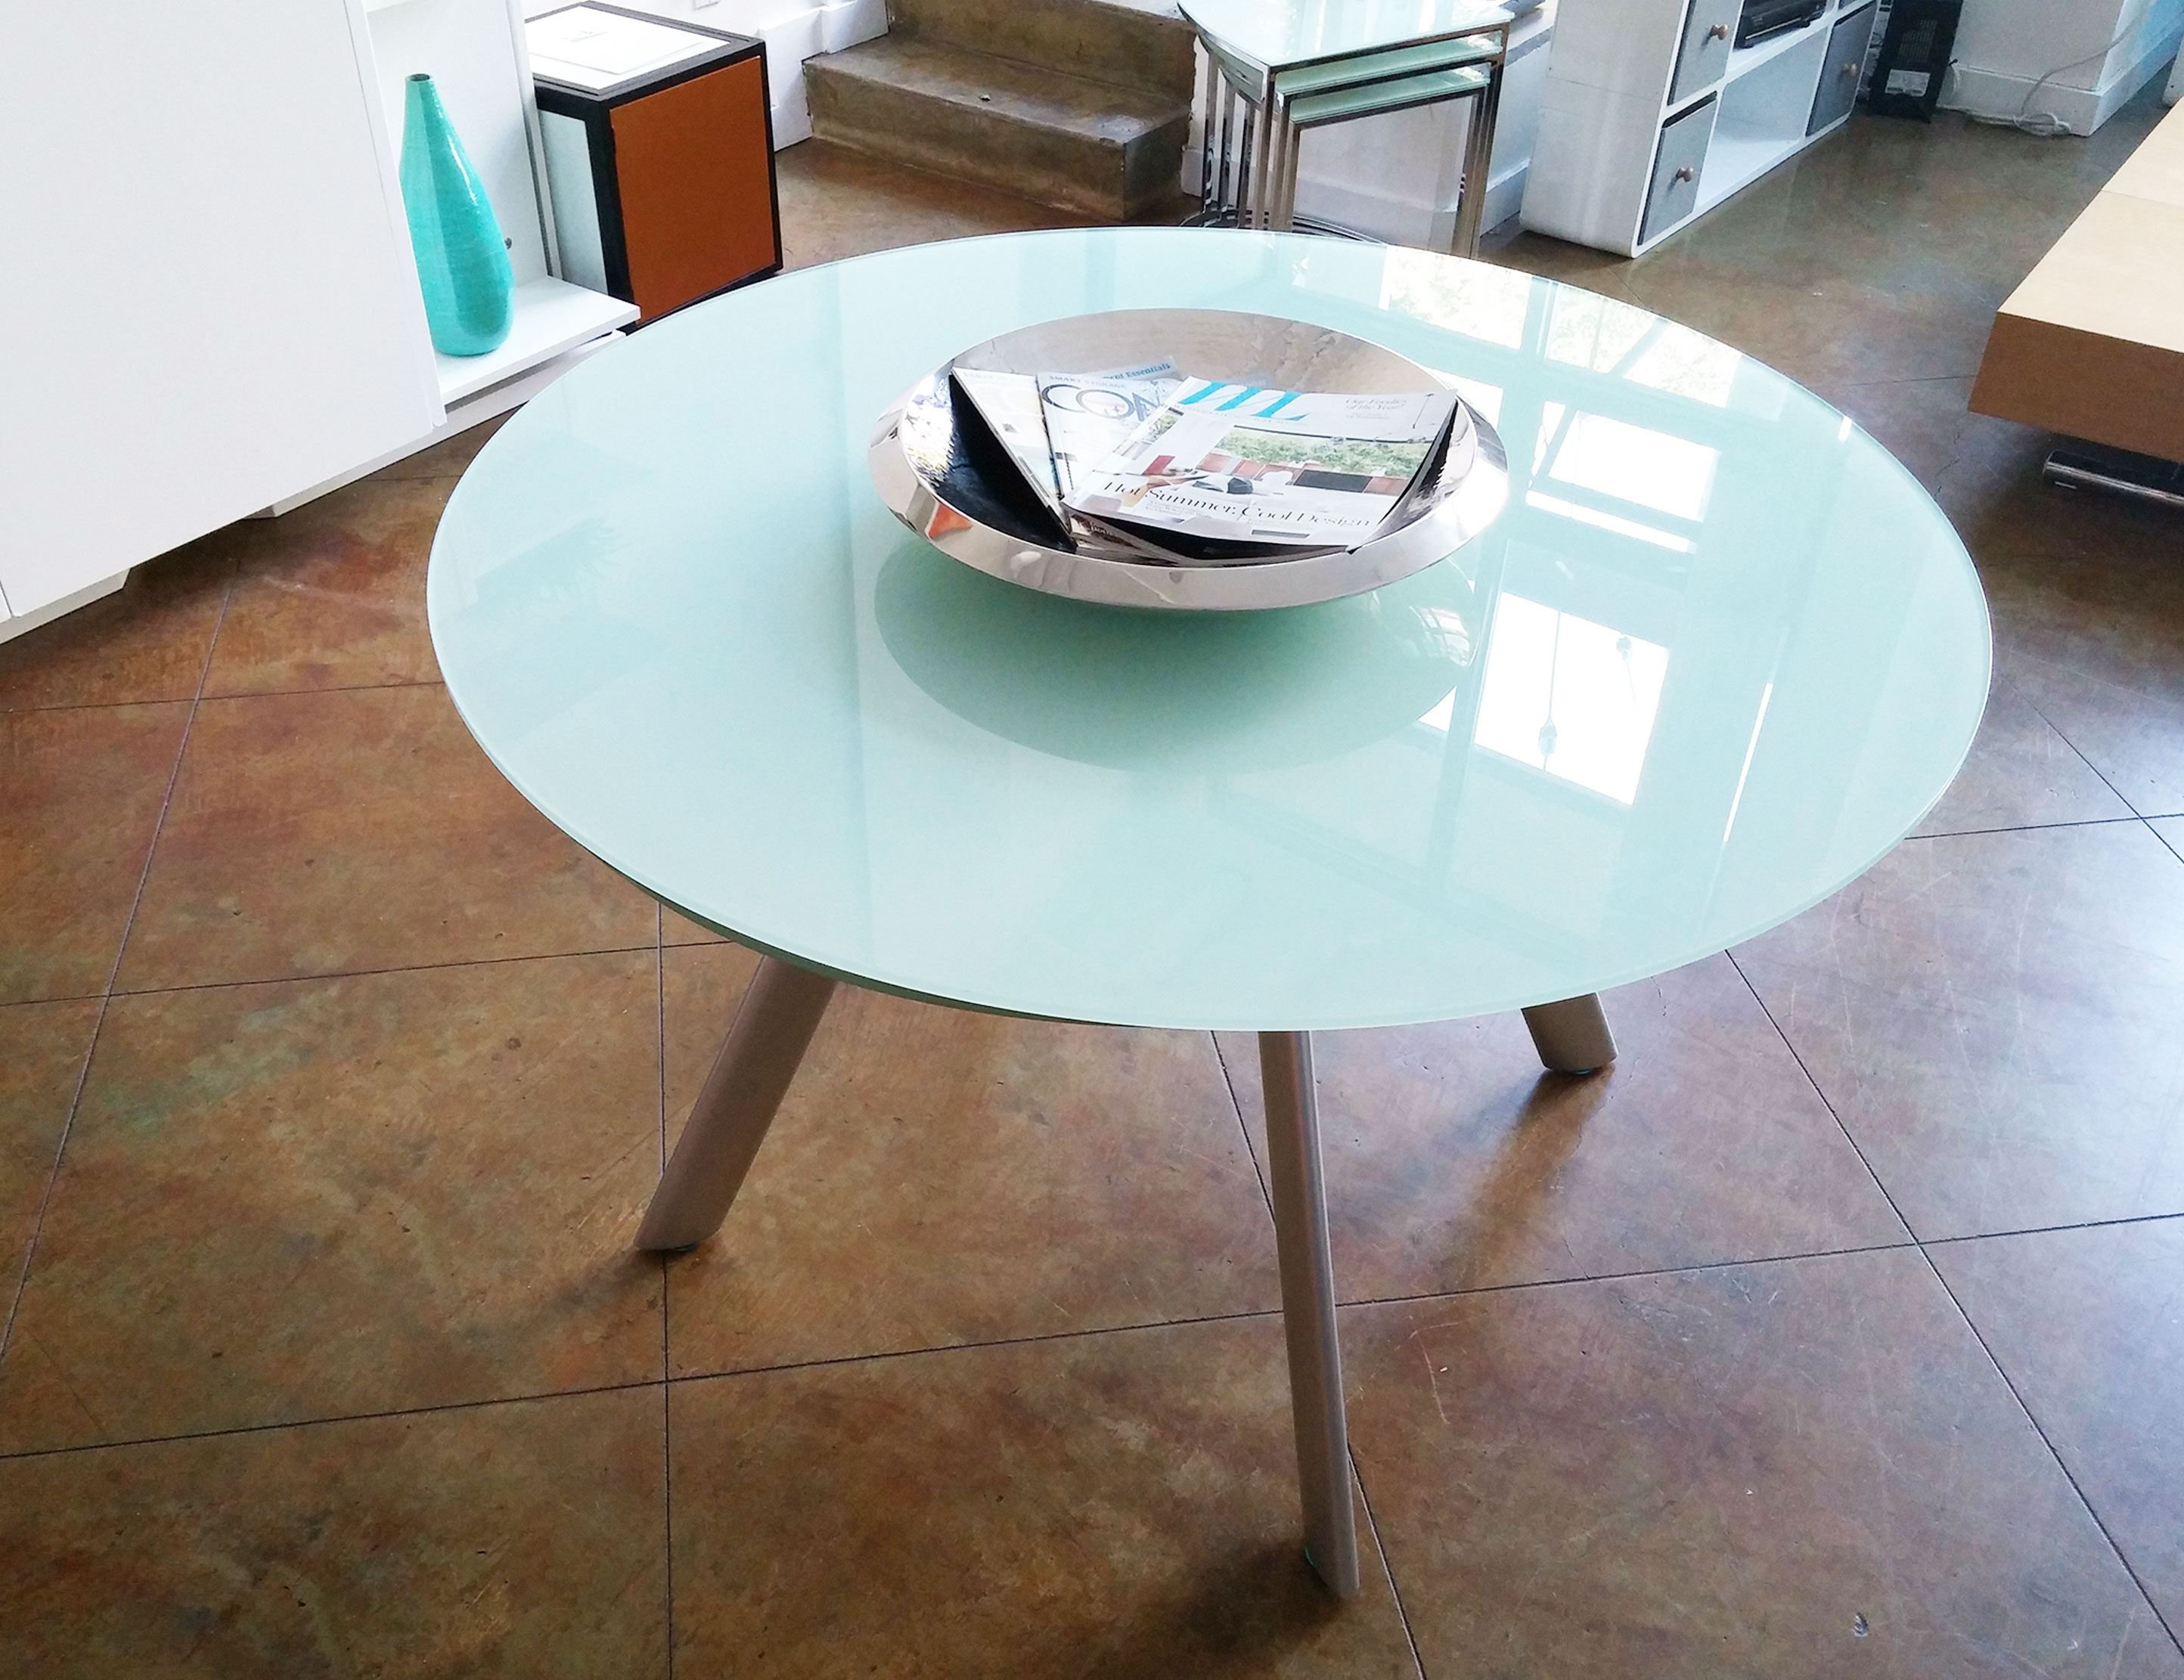 The Butterfly Expandable Round Glass Dining Table Expand Furniture Folding Tables Smarter Wall Beds Space Savers